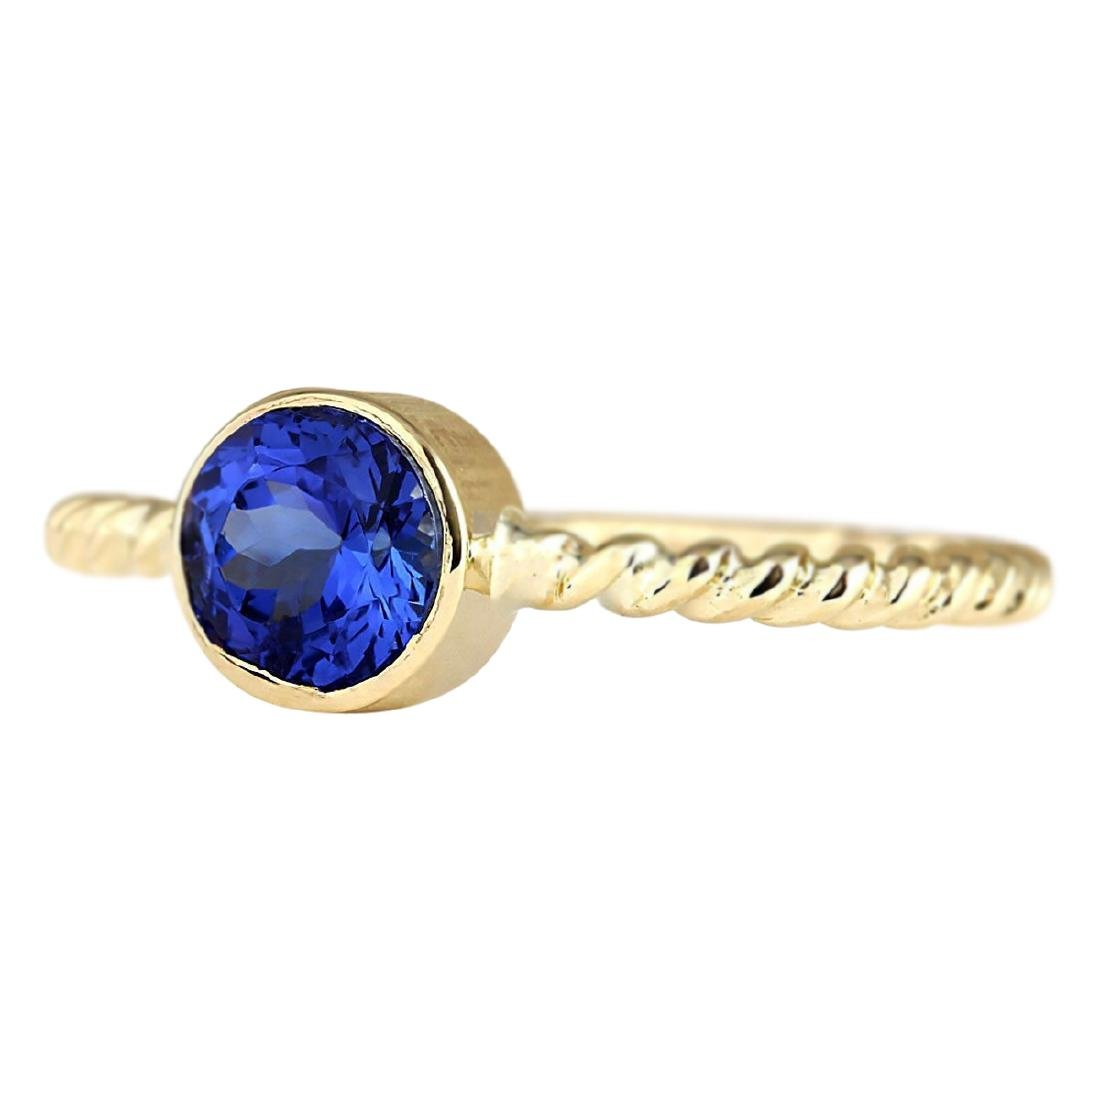 1.00 CTW Natural Tanzanite Ring In 18K Yellow Gold - 2